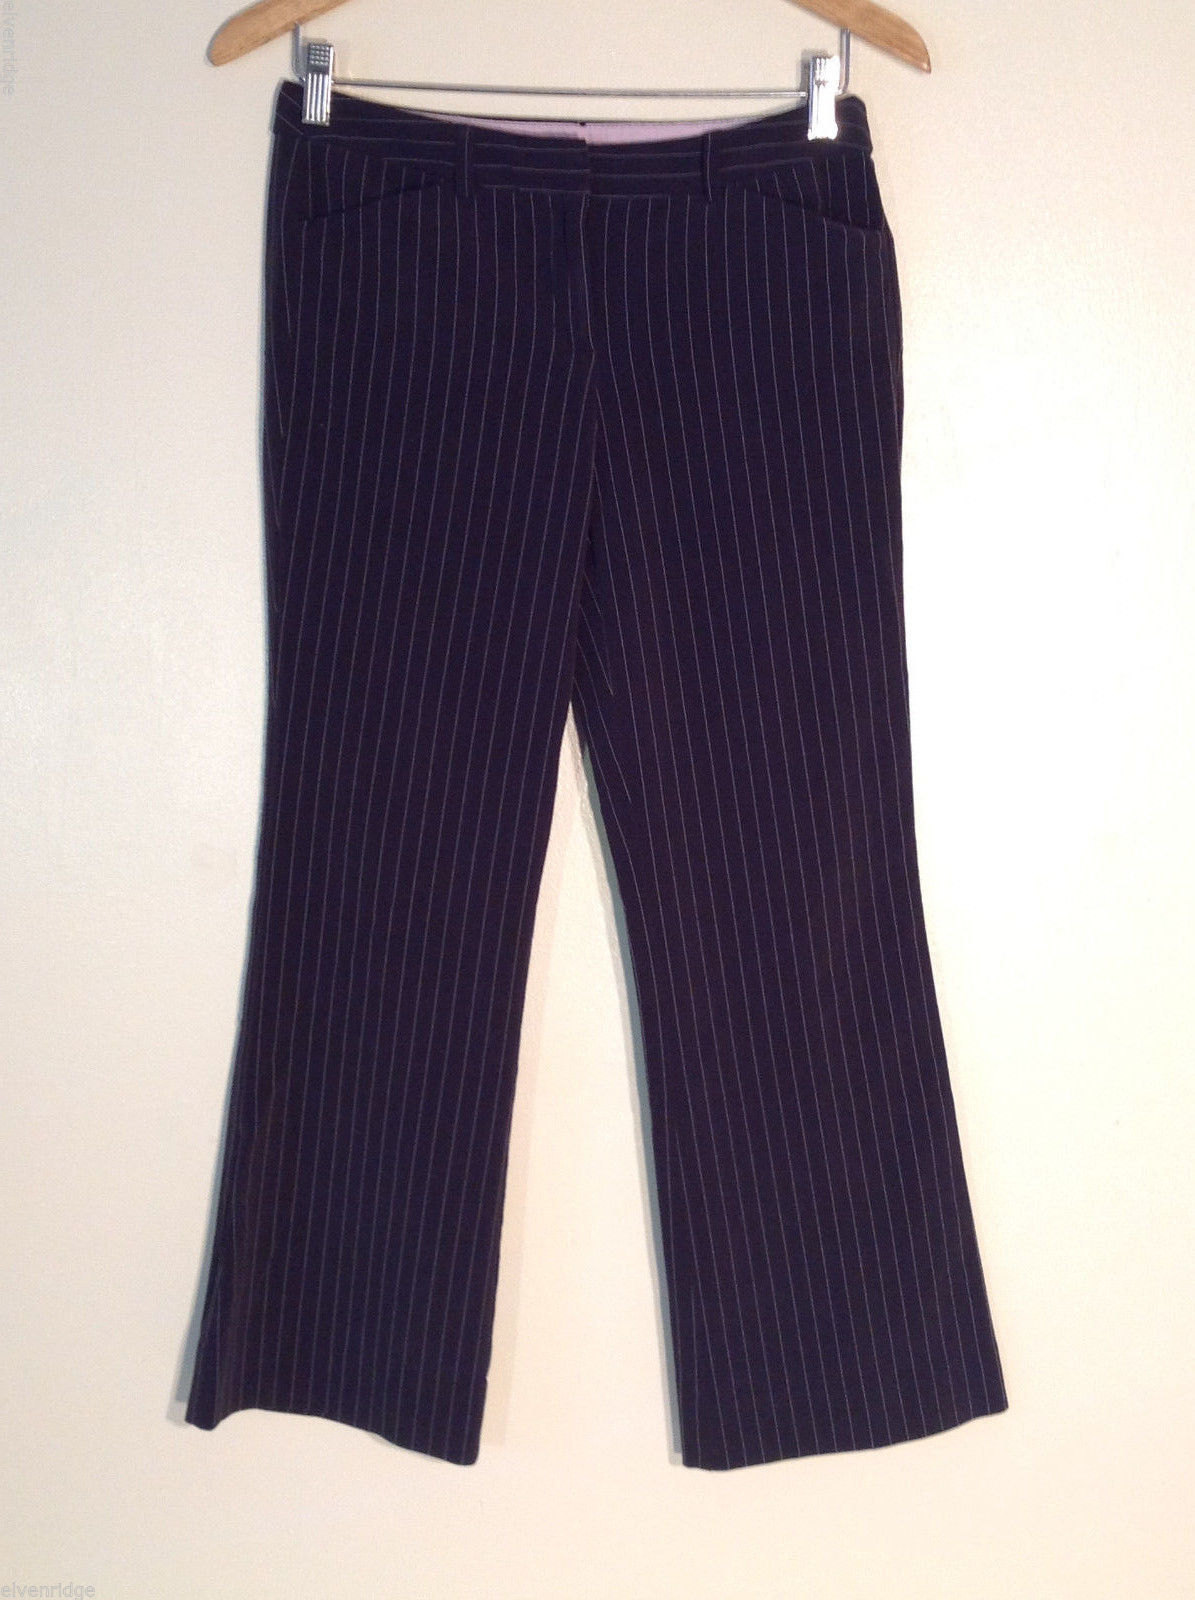 Tracy Evans Women's Petite Size 7-8 Dress Pants Black Pinstripes for Office Work